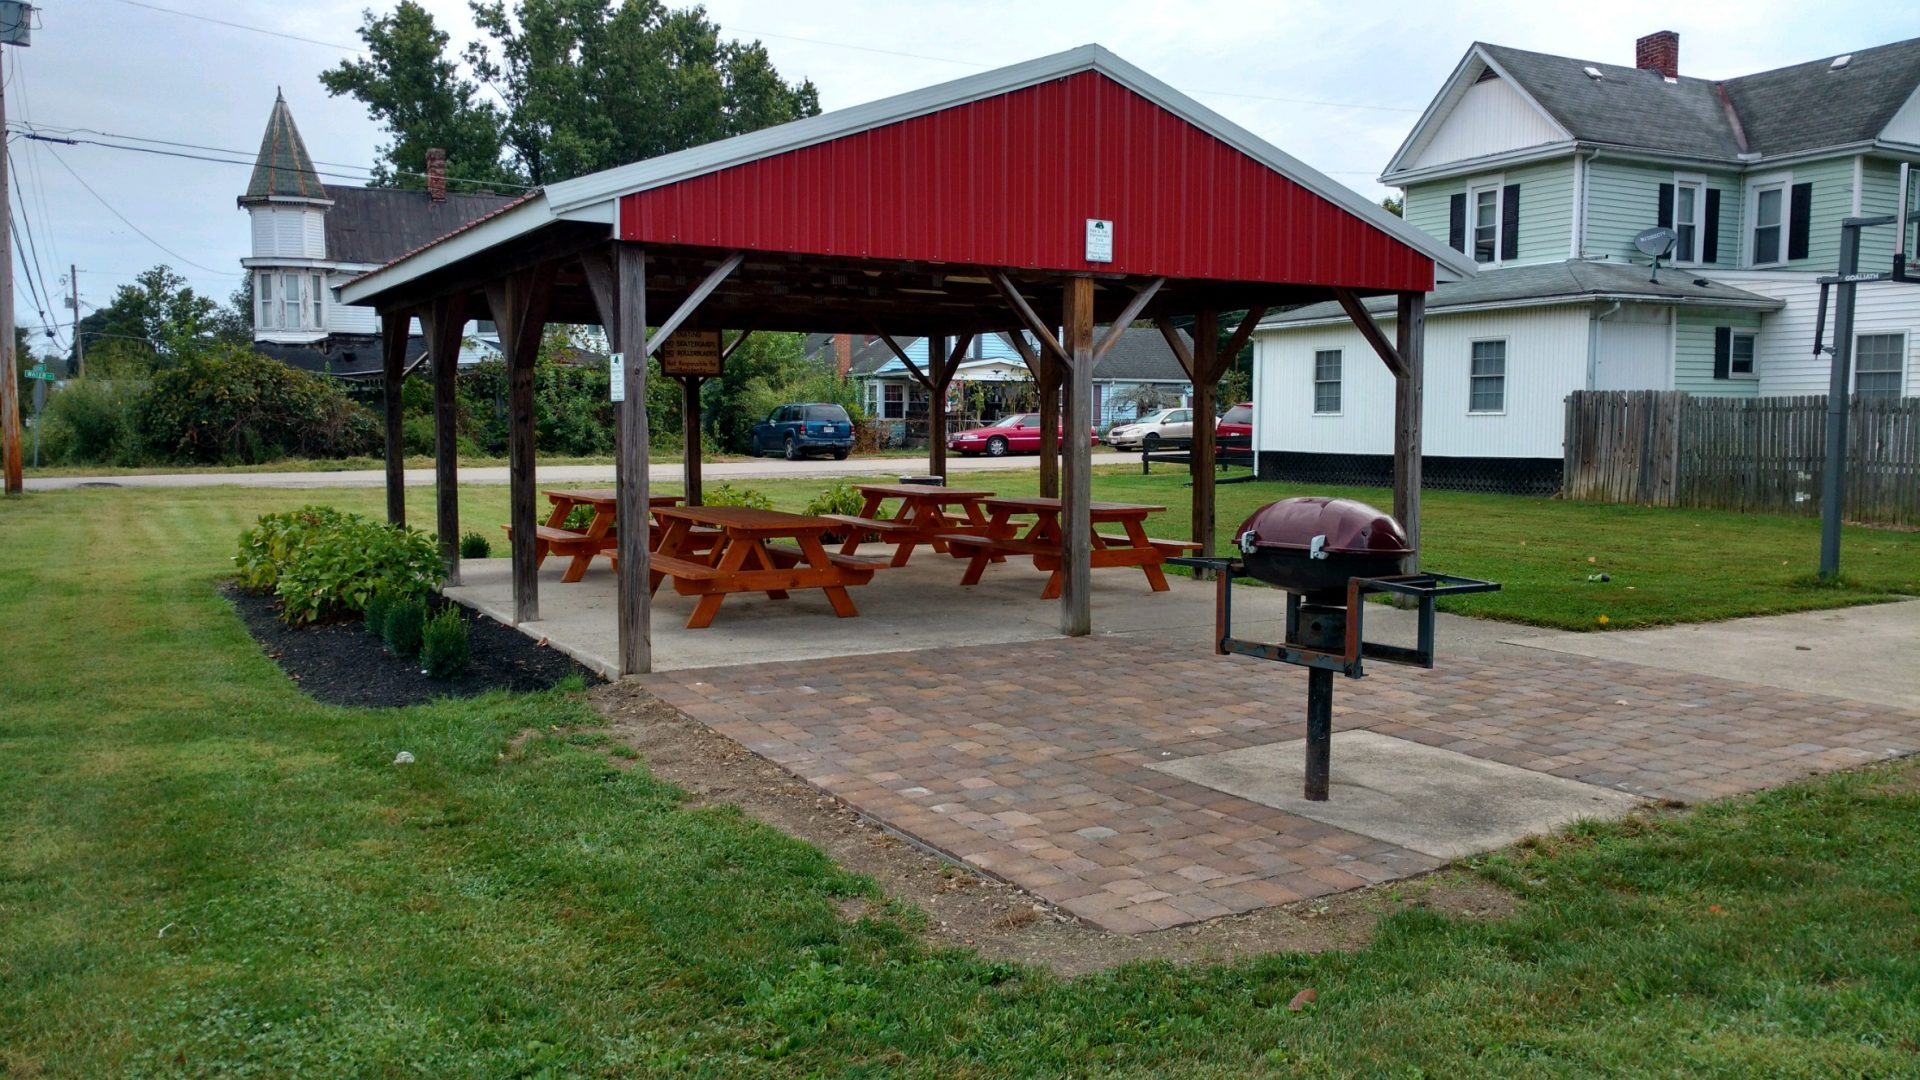 2018 Grant to the Village of Tarlton for Landscaping at Tarlton Community Park